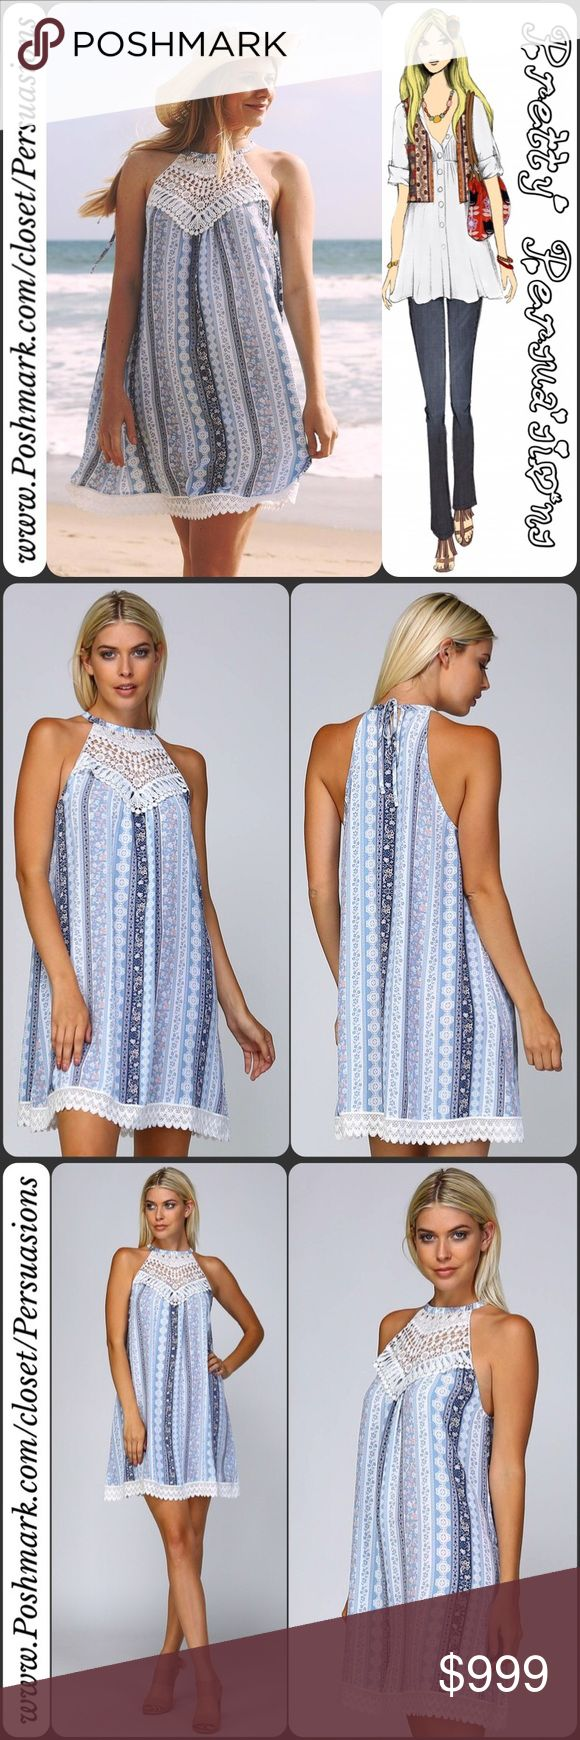 "SALE🌻 Crochet Appliqué A-Line Tank Dress NWT Boho Crochet Appliqué A-Line Dress  Available in sizes M, L Measurements taken from a size small  Length: 34"" Bust: 36"" Waist: 46""  Features  • cotton lace crochet appliqué at bust • cotton lace crochet trim at bottom hem • woven, lightweight, soft & breathable material • all over stripe & floral print • a-line • sleeveless • relaxed fit • ties at back of neck • split/keyhole accent at back of neck  Bundle discounts available No pp or trades…"